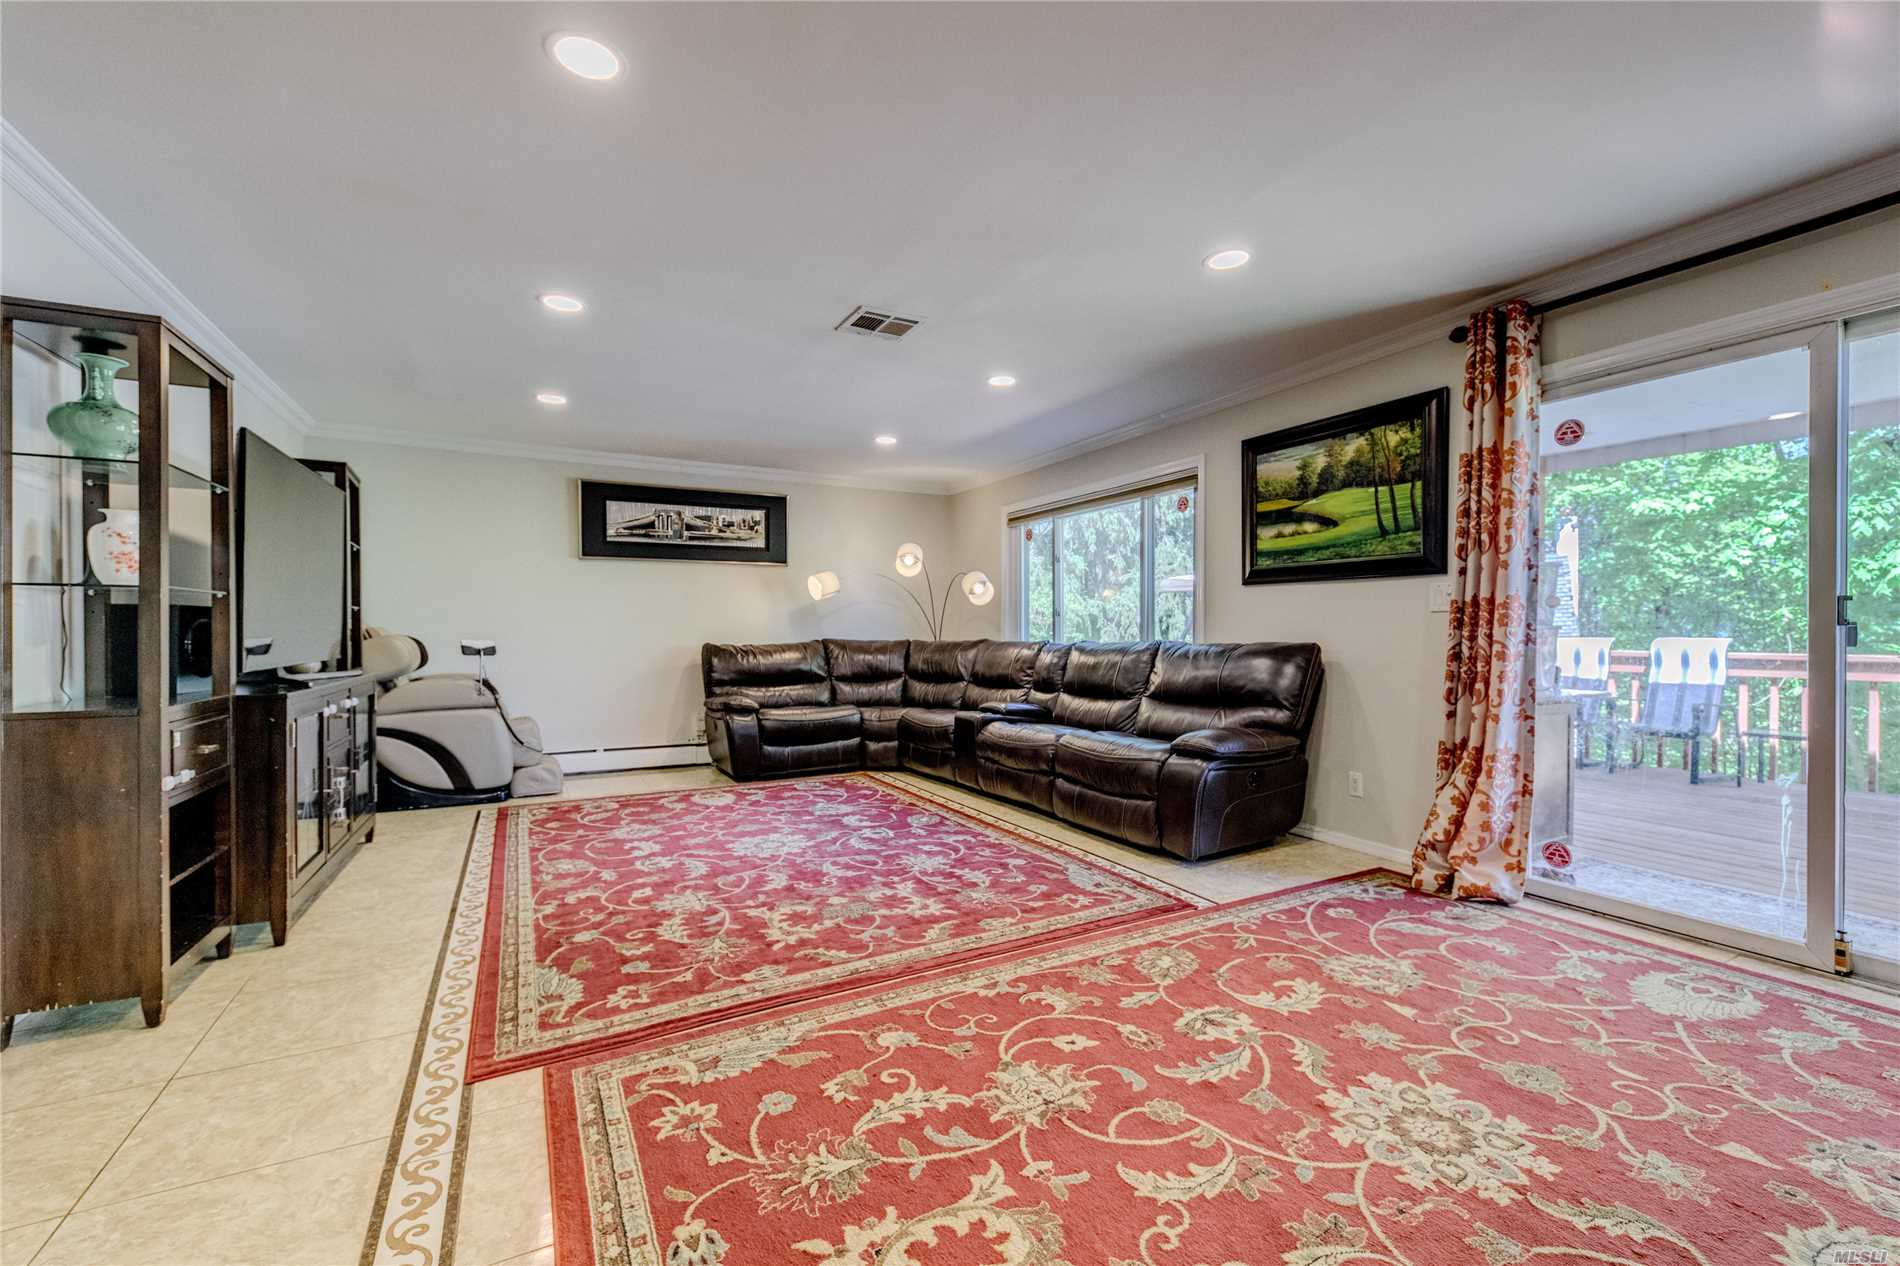 Renovated Spacious Bright Home, Fit For A Large Family Or Possible Mother-Daughter, 3 Granite Bathrooms, Granite Eat-In-Kitchen, Huge Deck Off Very Large Family Room Overlooking Country Scenery! Block Away From Thomaston Park, Walk To Railroad. Option Of South Or North Great Neck Middle & High School. Whole House Water Filter System.